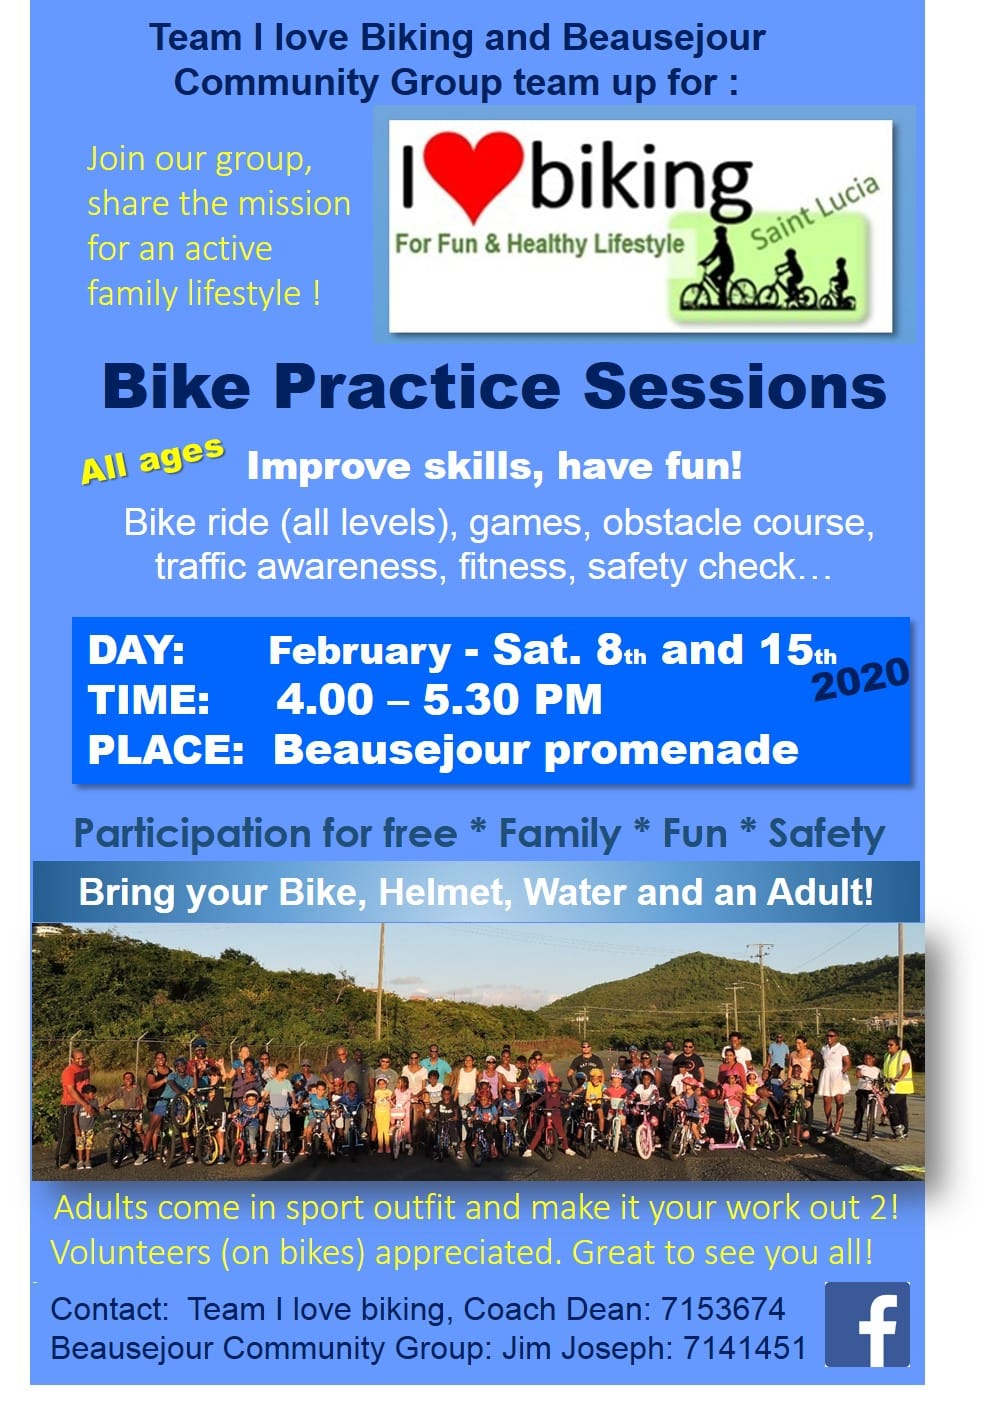 free bike practice sessions for youth at Beausejour Promenade